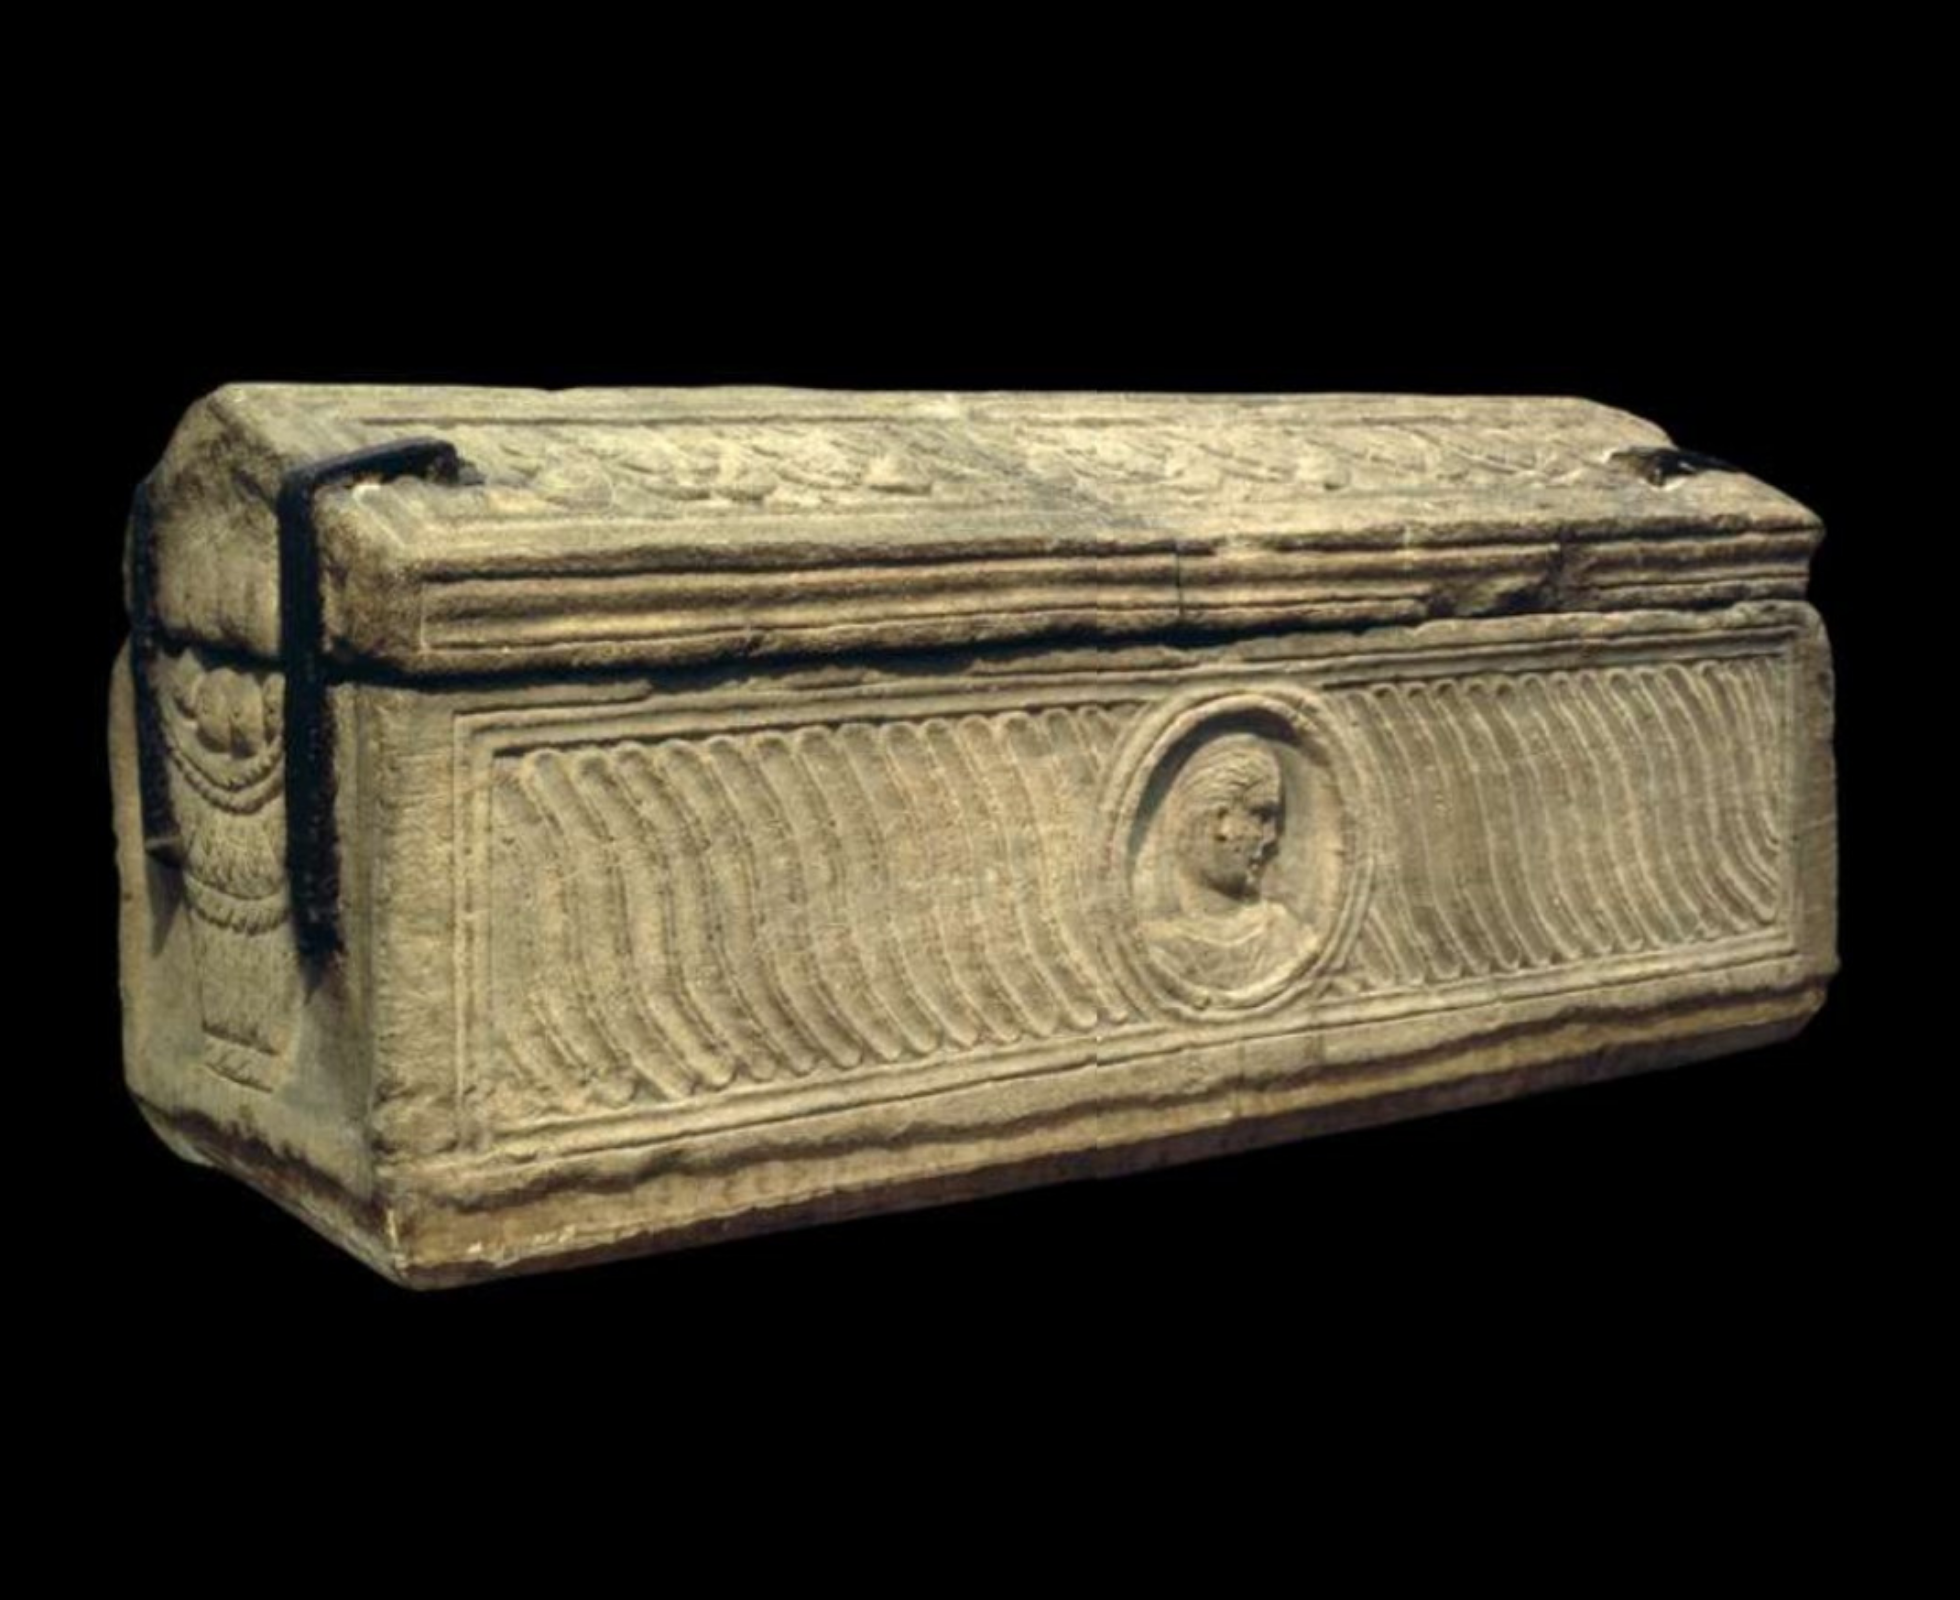 Image of a stone sarcophagus, made in Britain in the early 4th century AD.